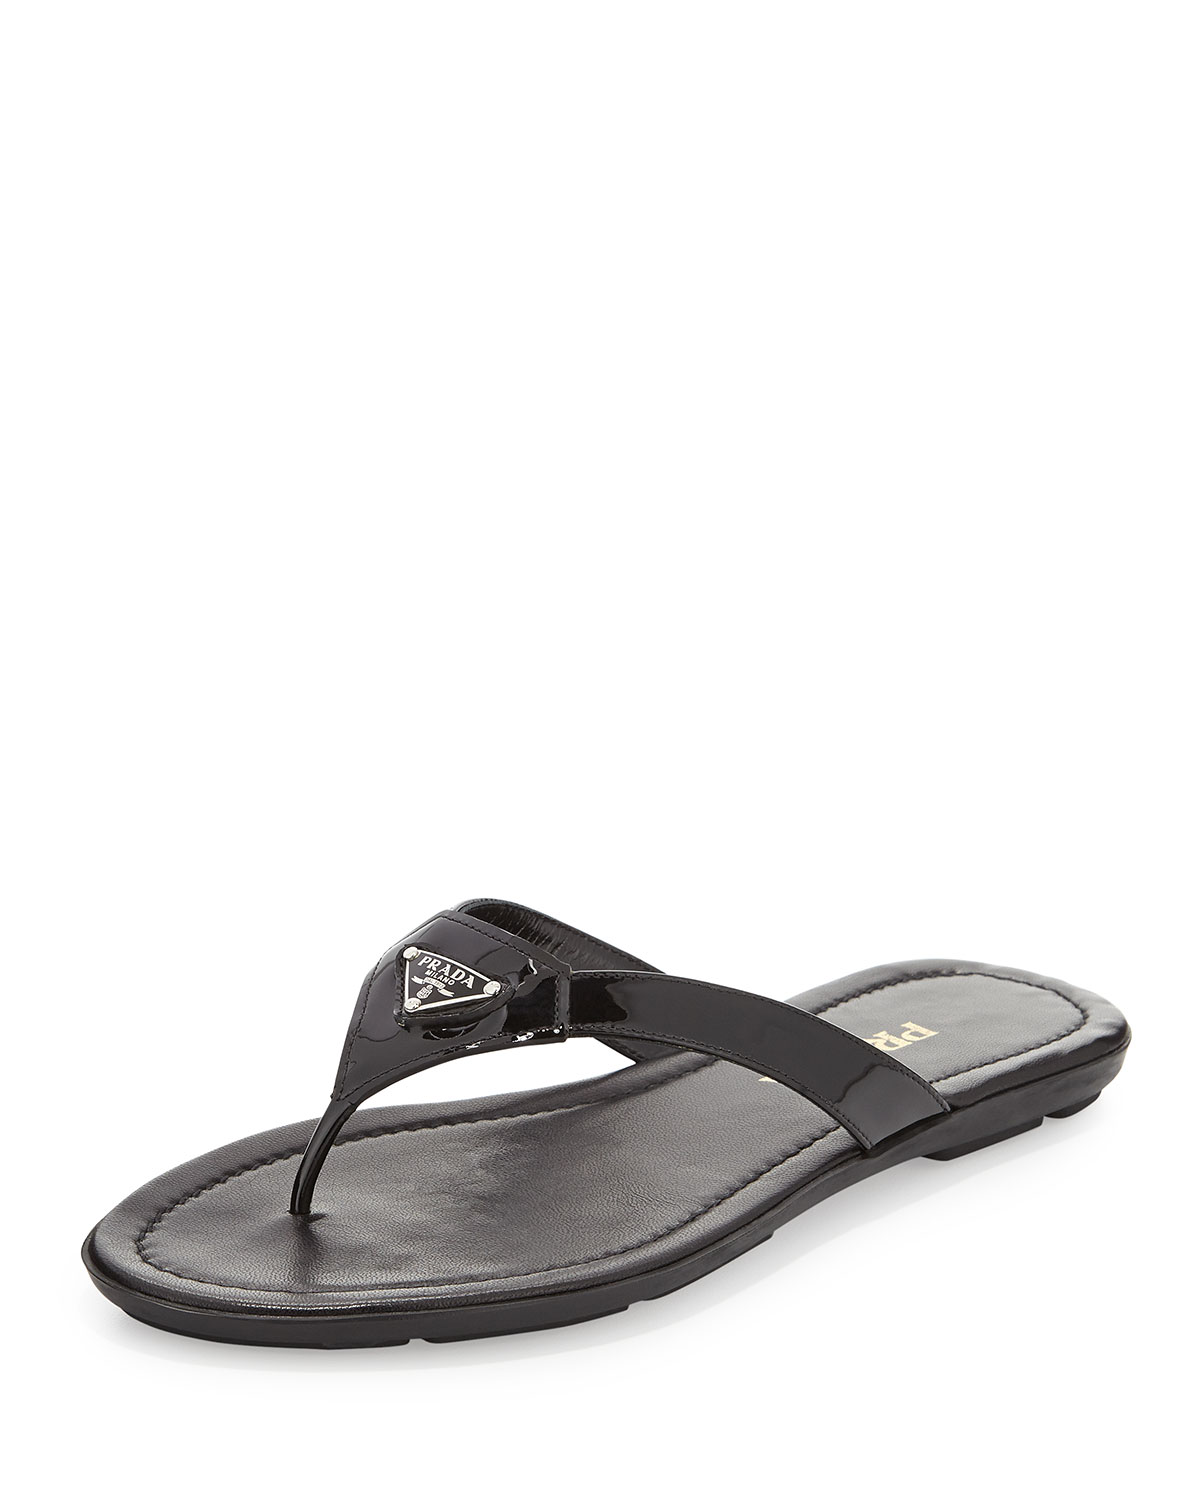 c93c73f2c Prada Patent Leather Thong Sandal